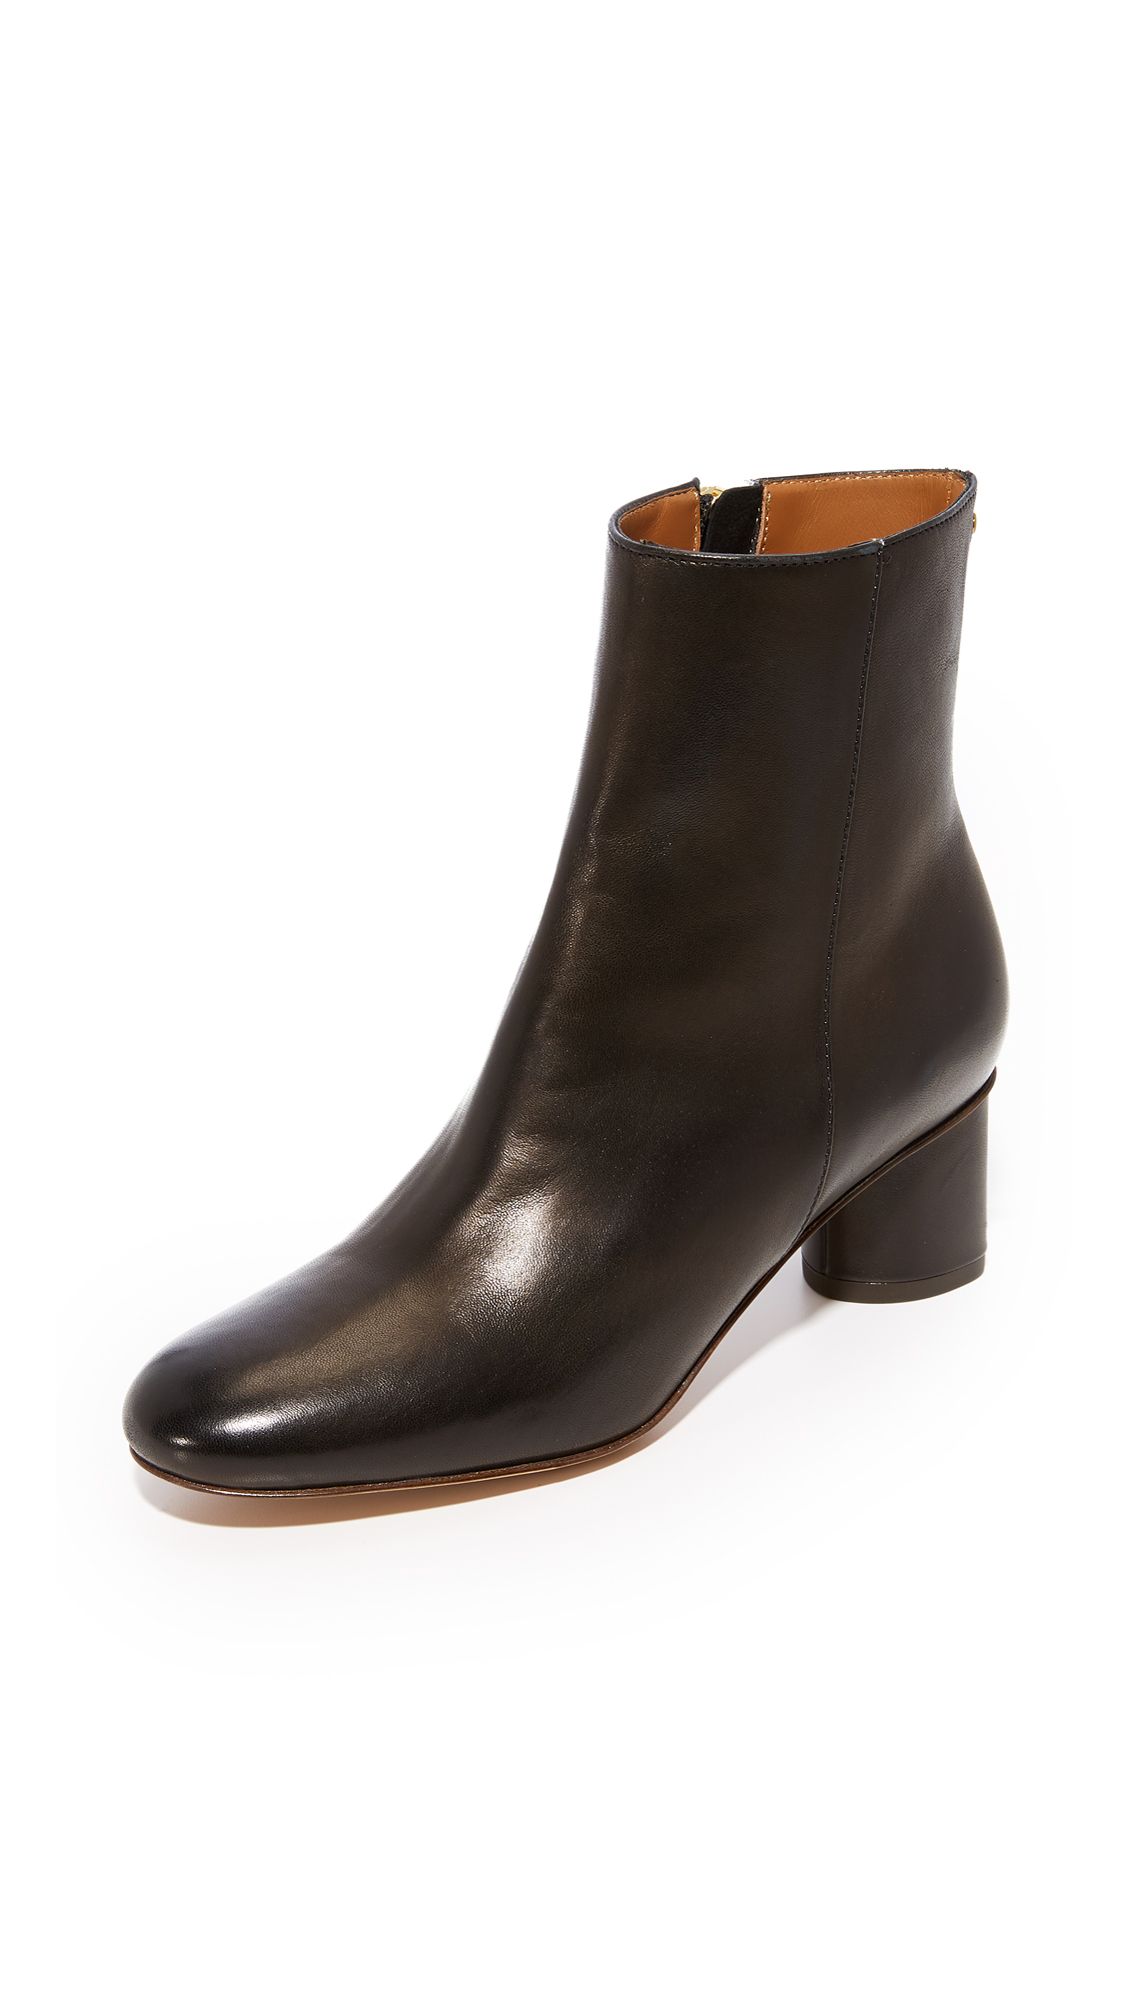 Jerome Dreyfuss Patricia 50 Ankle Booties - Noir